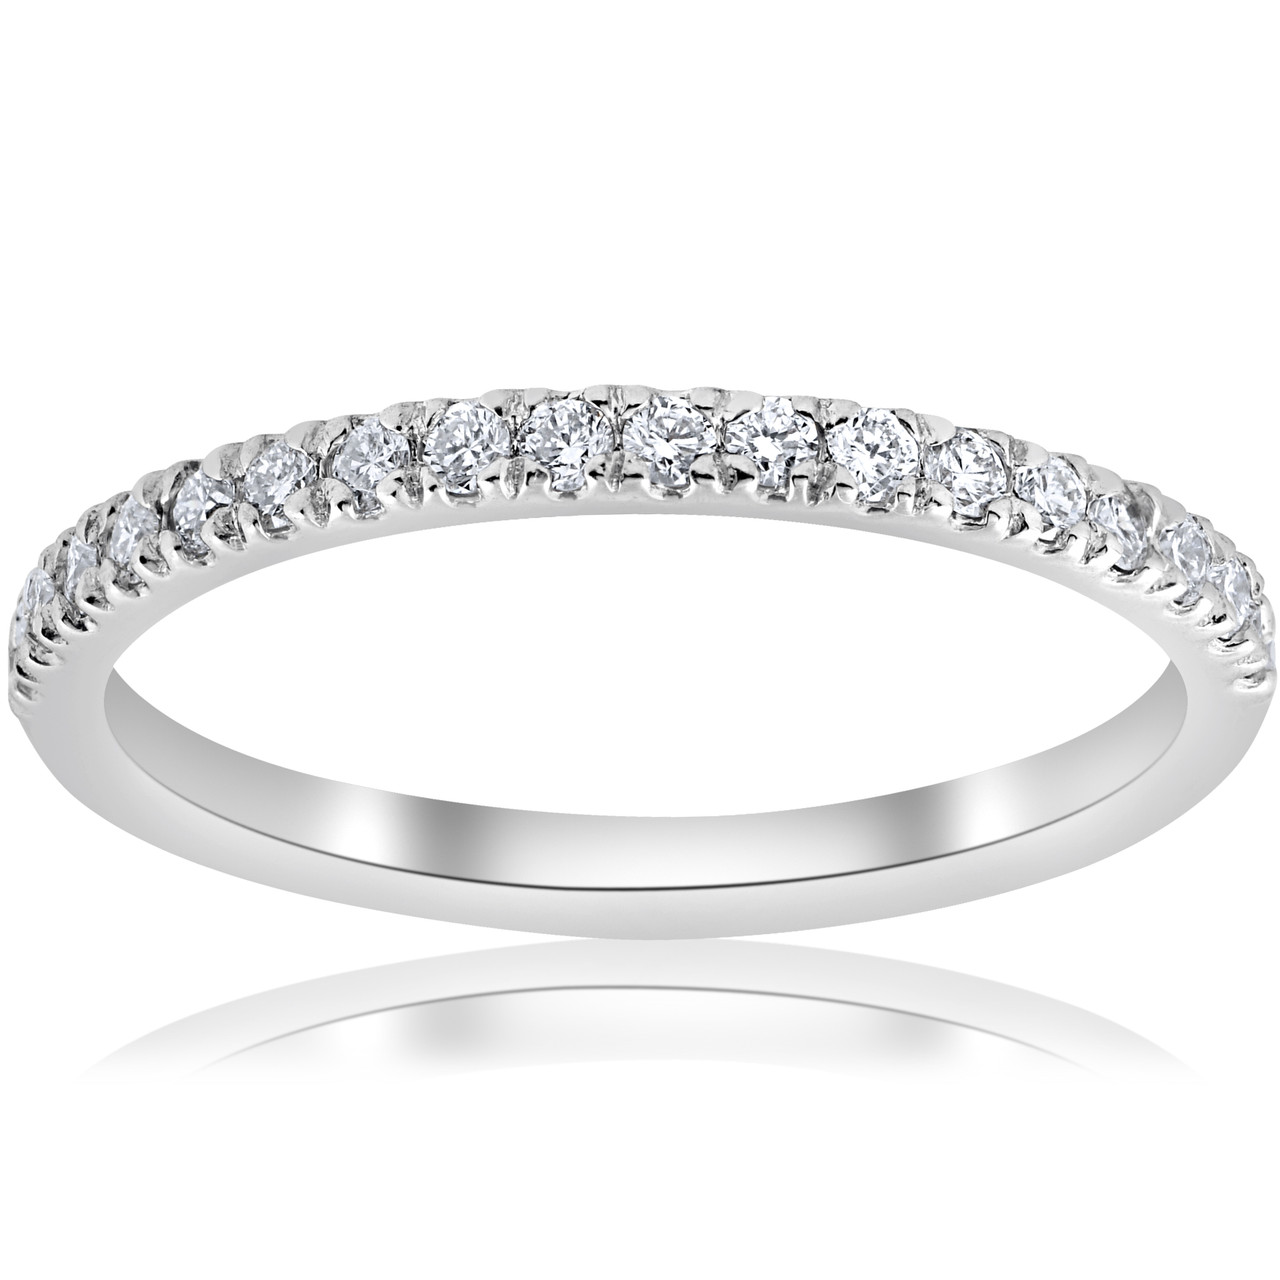 15ct Pave Diamond Wedding Ring Stackable Anniversary Band 14k White